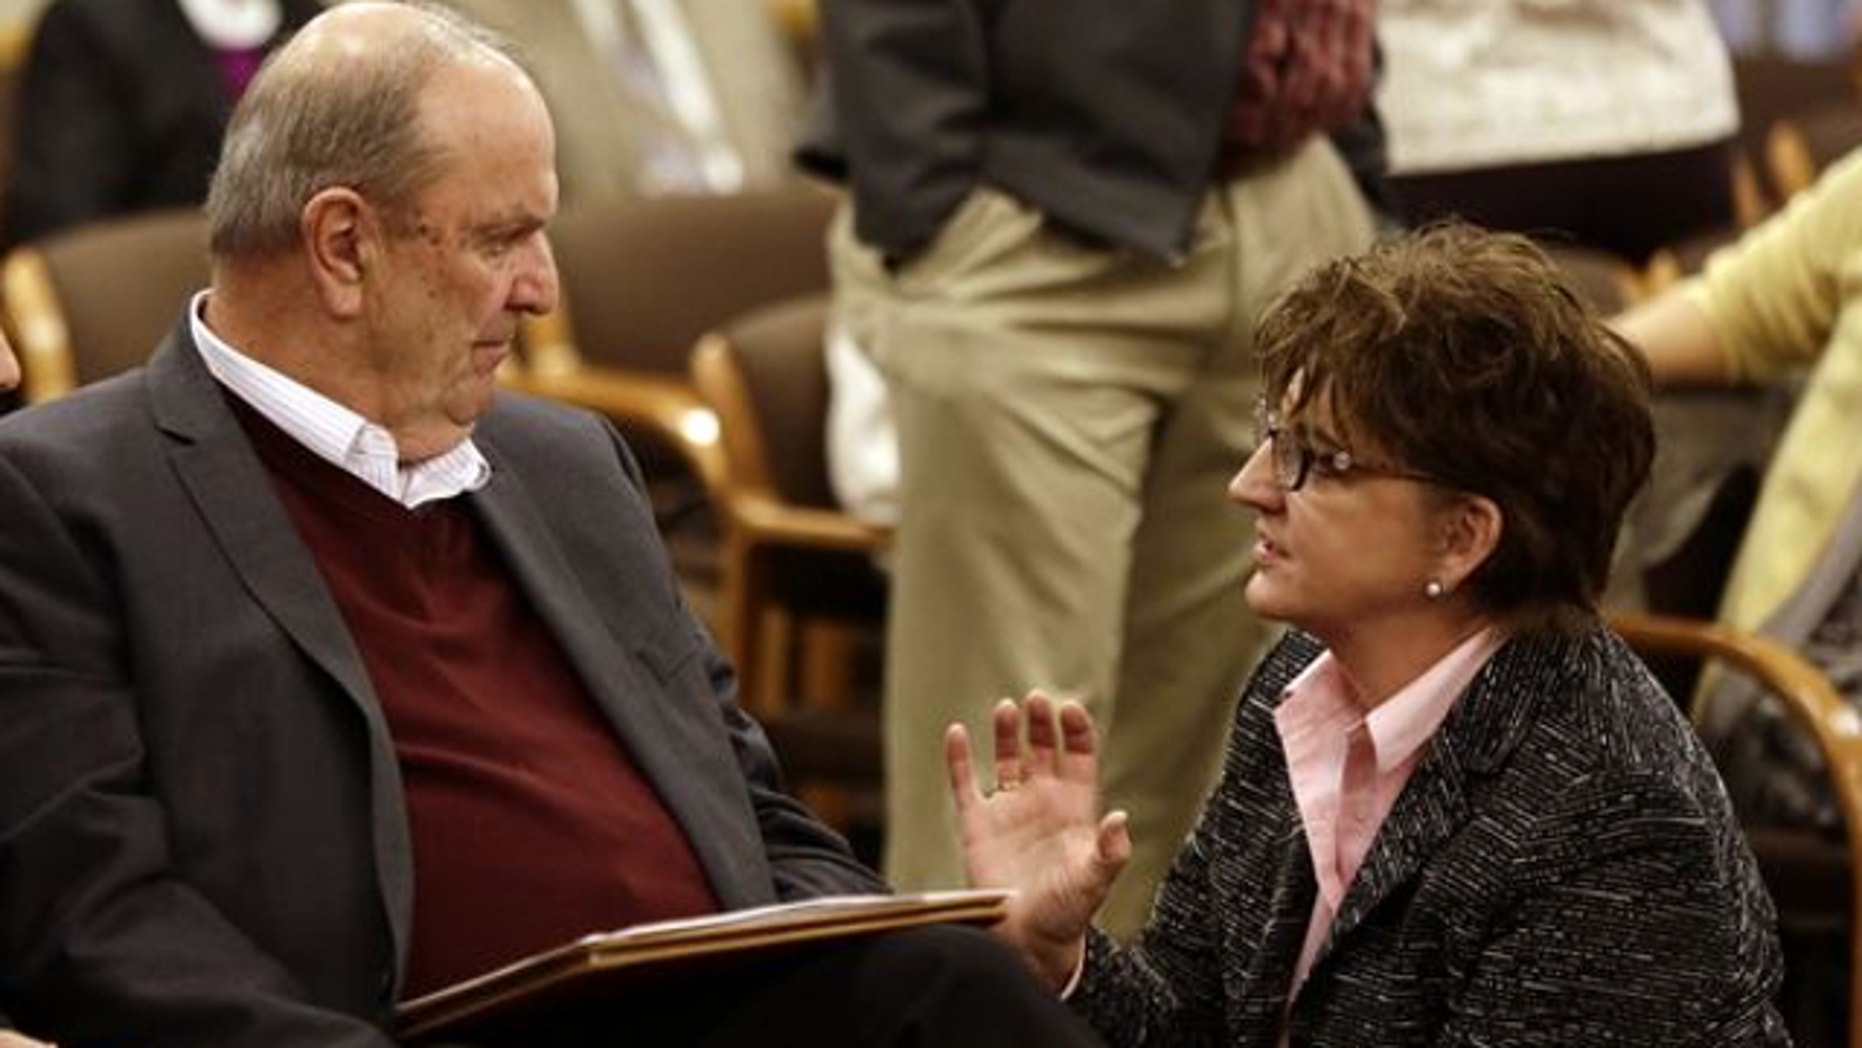 FILE: Nov. 20, 2013: Cover Oregon executive director Rocky King, left, confers with Oregon Health Authority Chief Information Officer Carolyn Lawson before appearing at a Joint Interim Committee on Legislative Audits, Information Management and Technology in Salem, Ore.